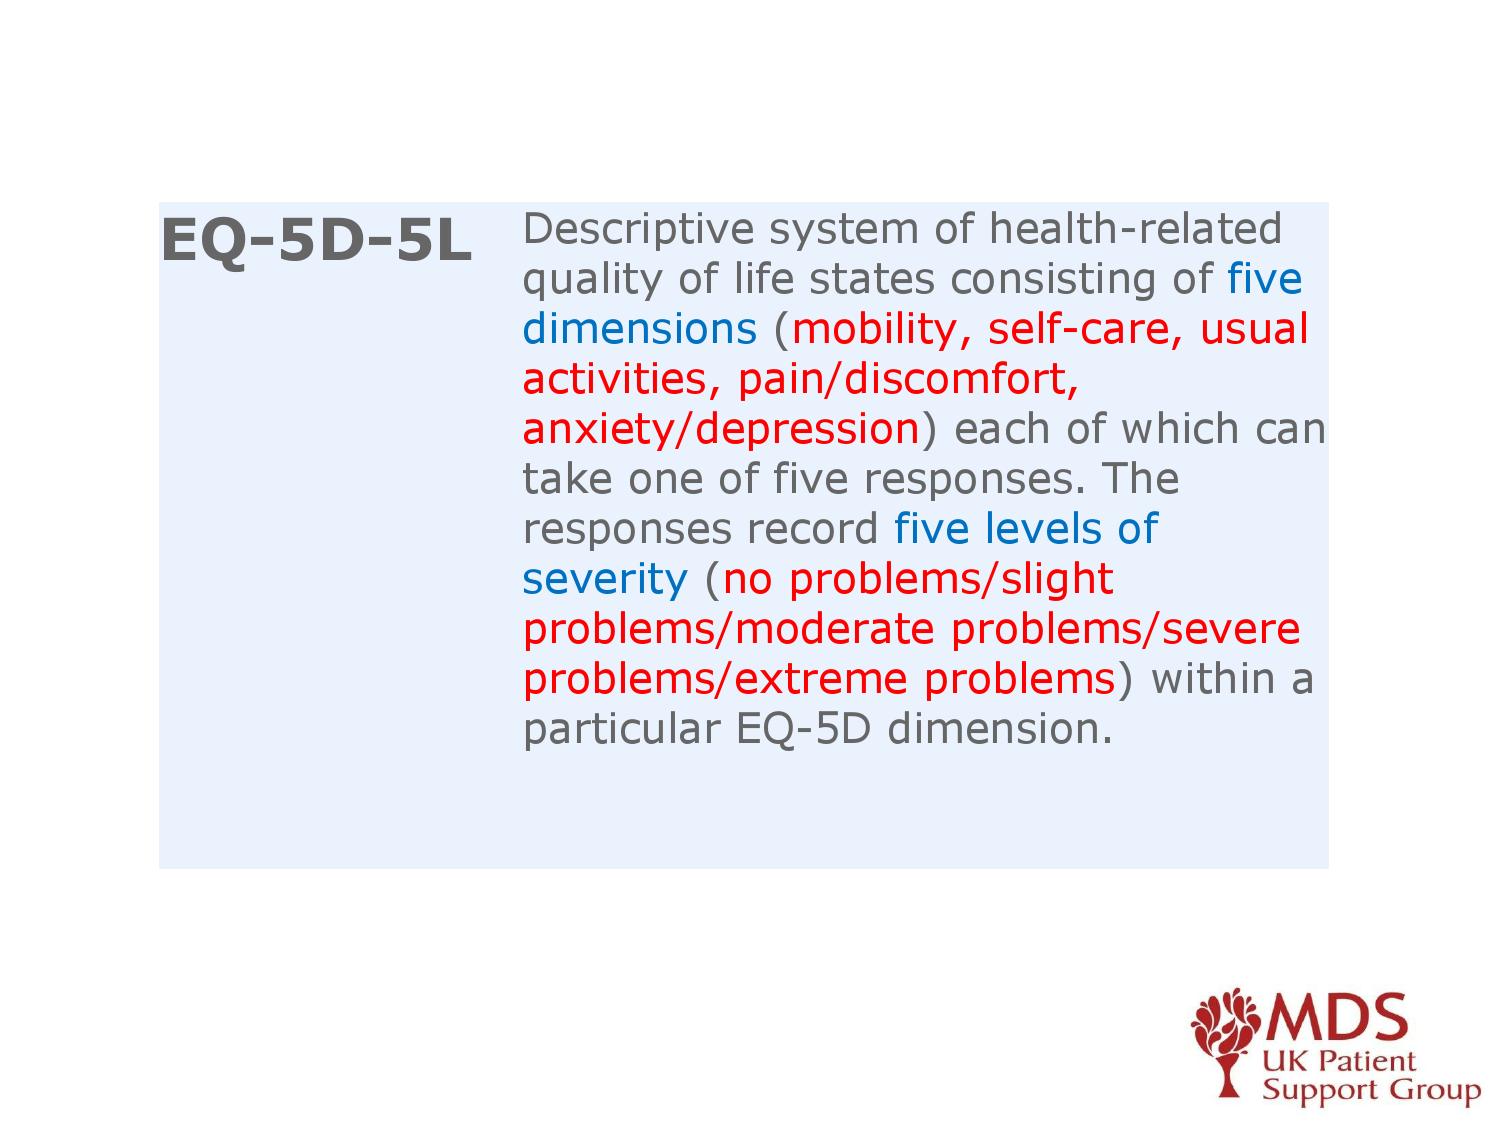 uk-mds-forum-slides-2014-slide-14.png